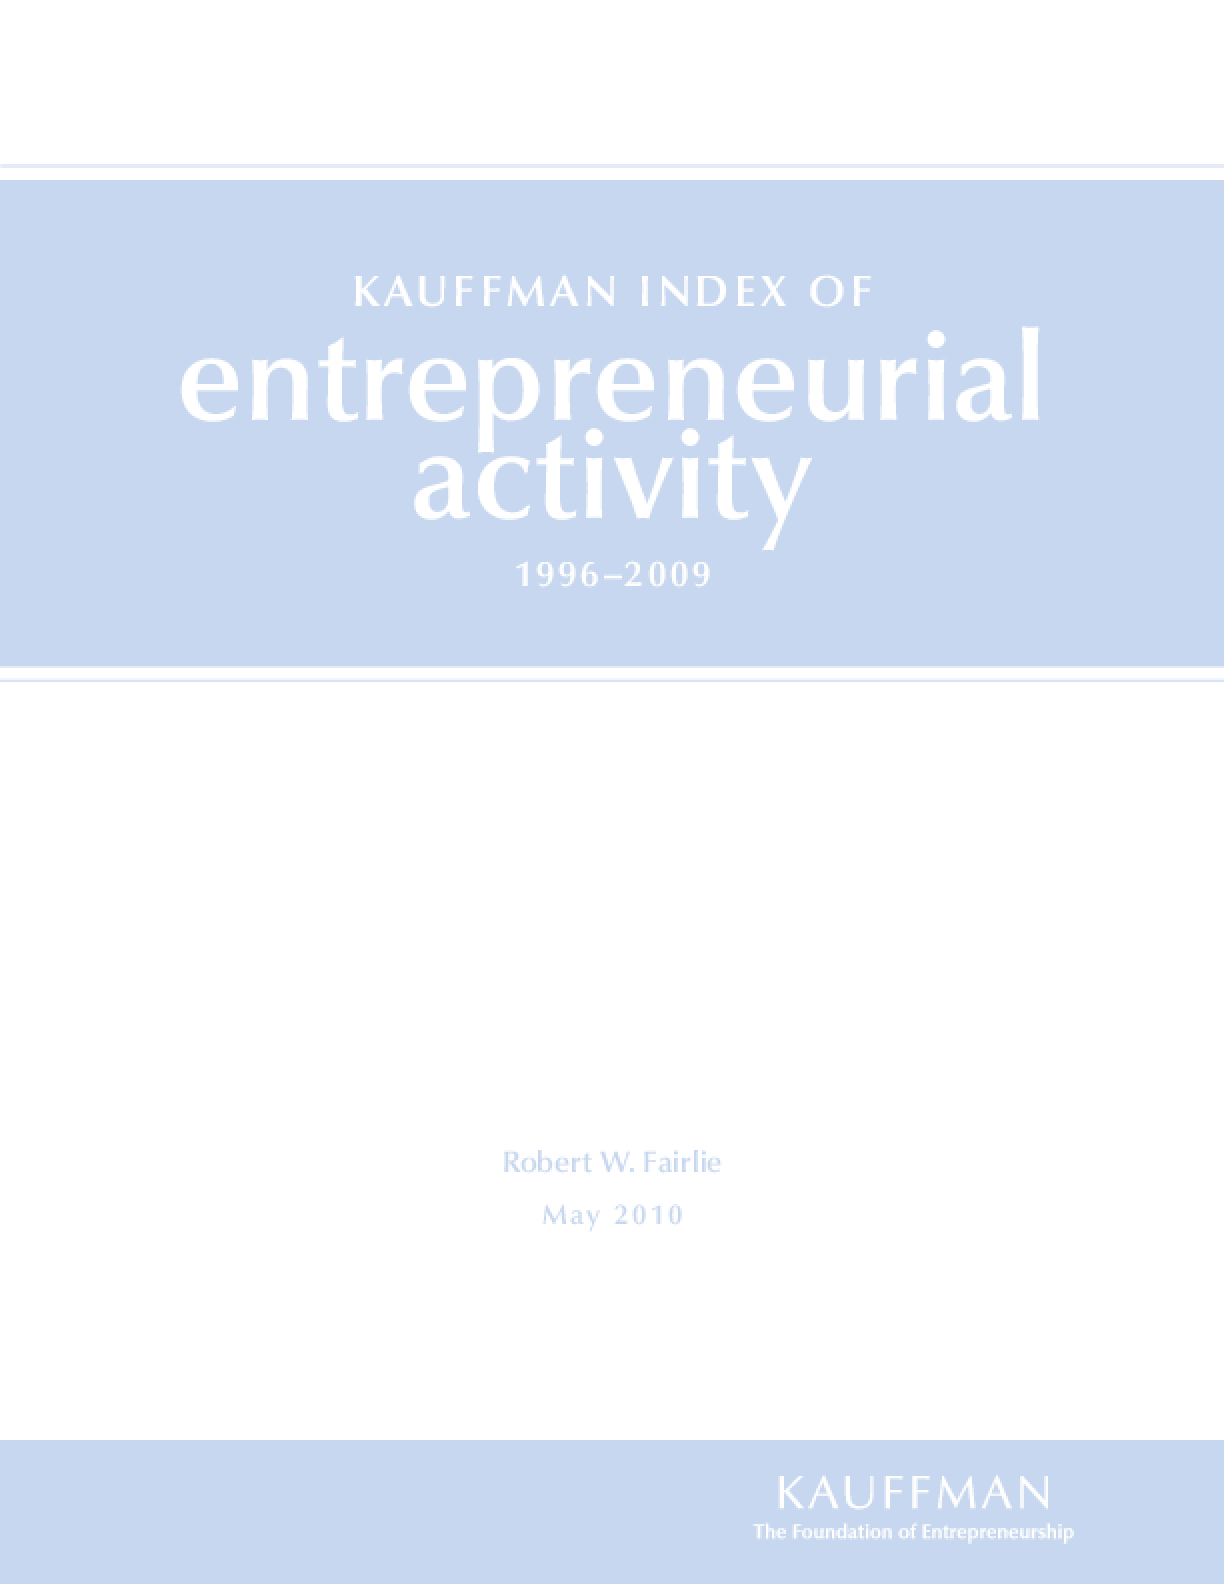 Kauffman Index of Entrepreneurial Activity, 1996-2009